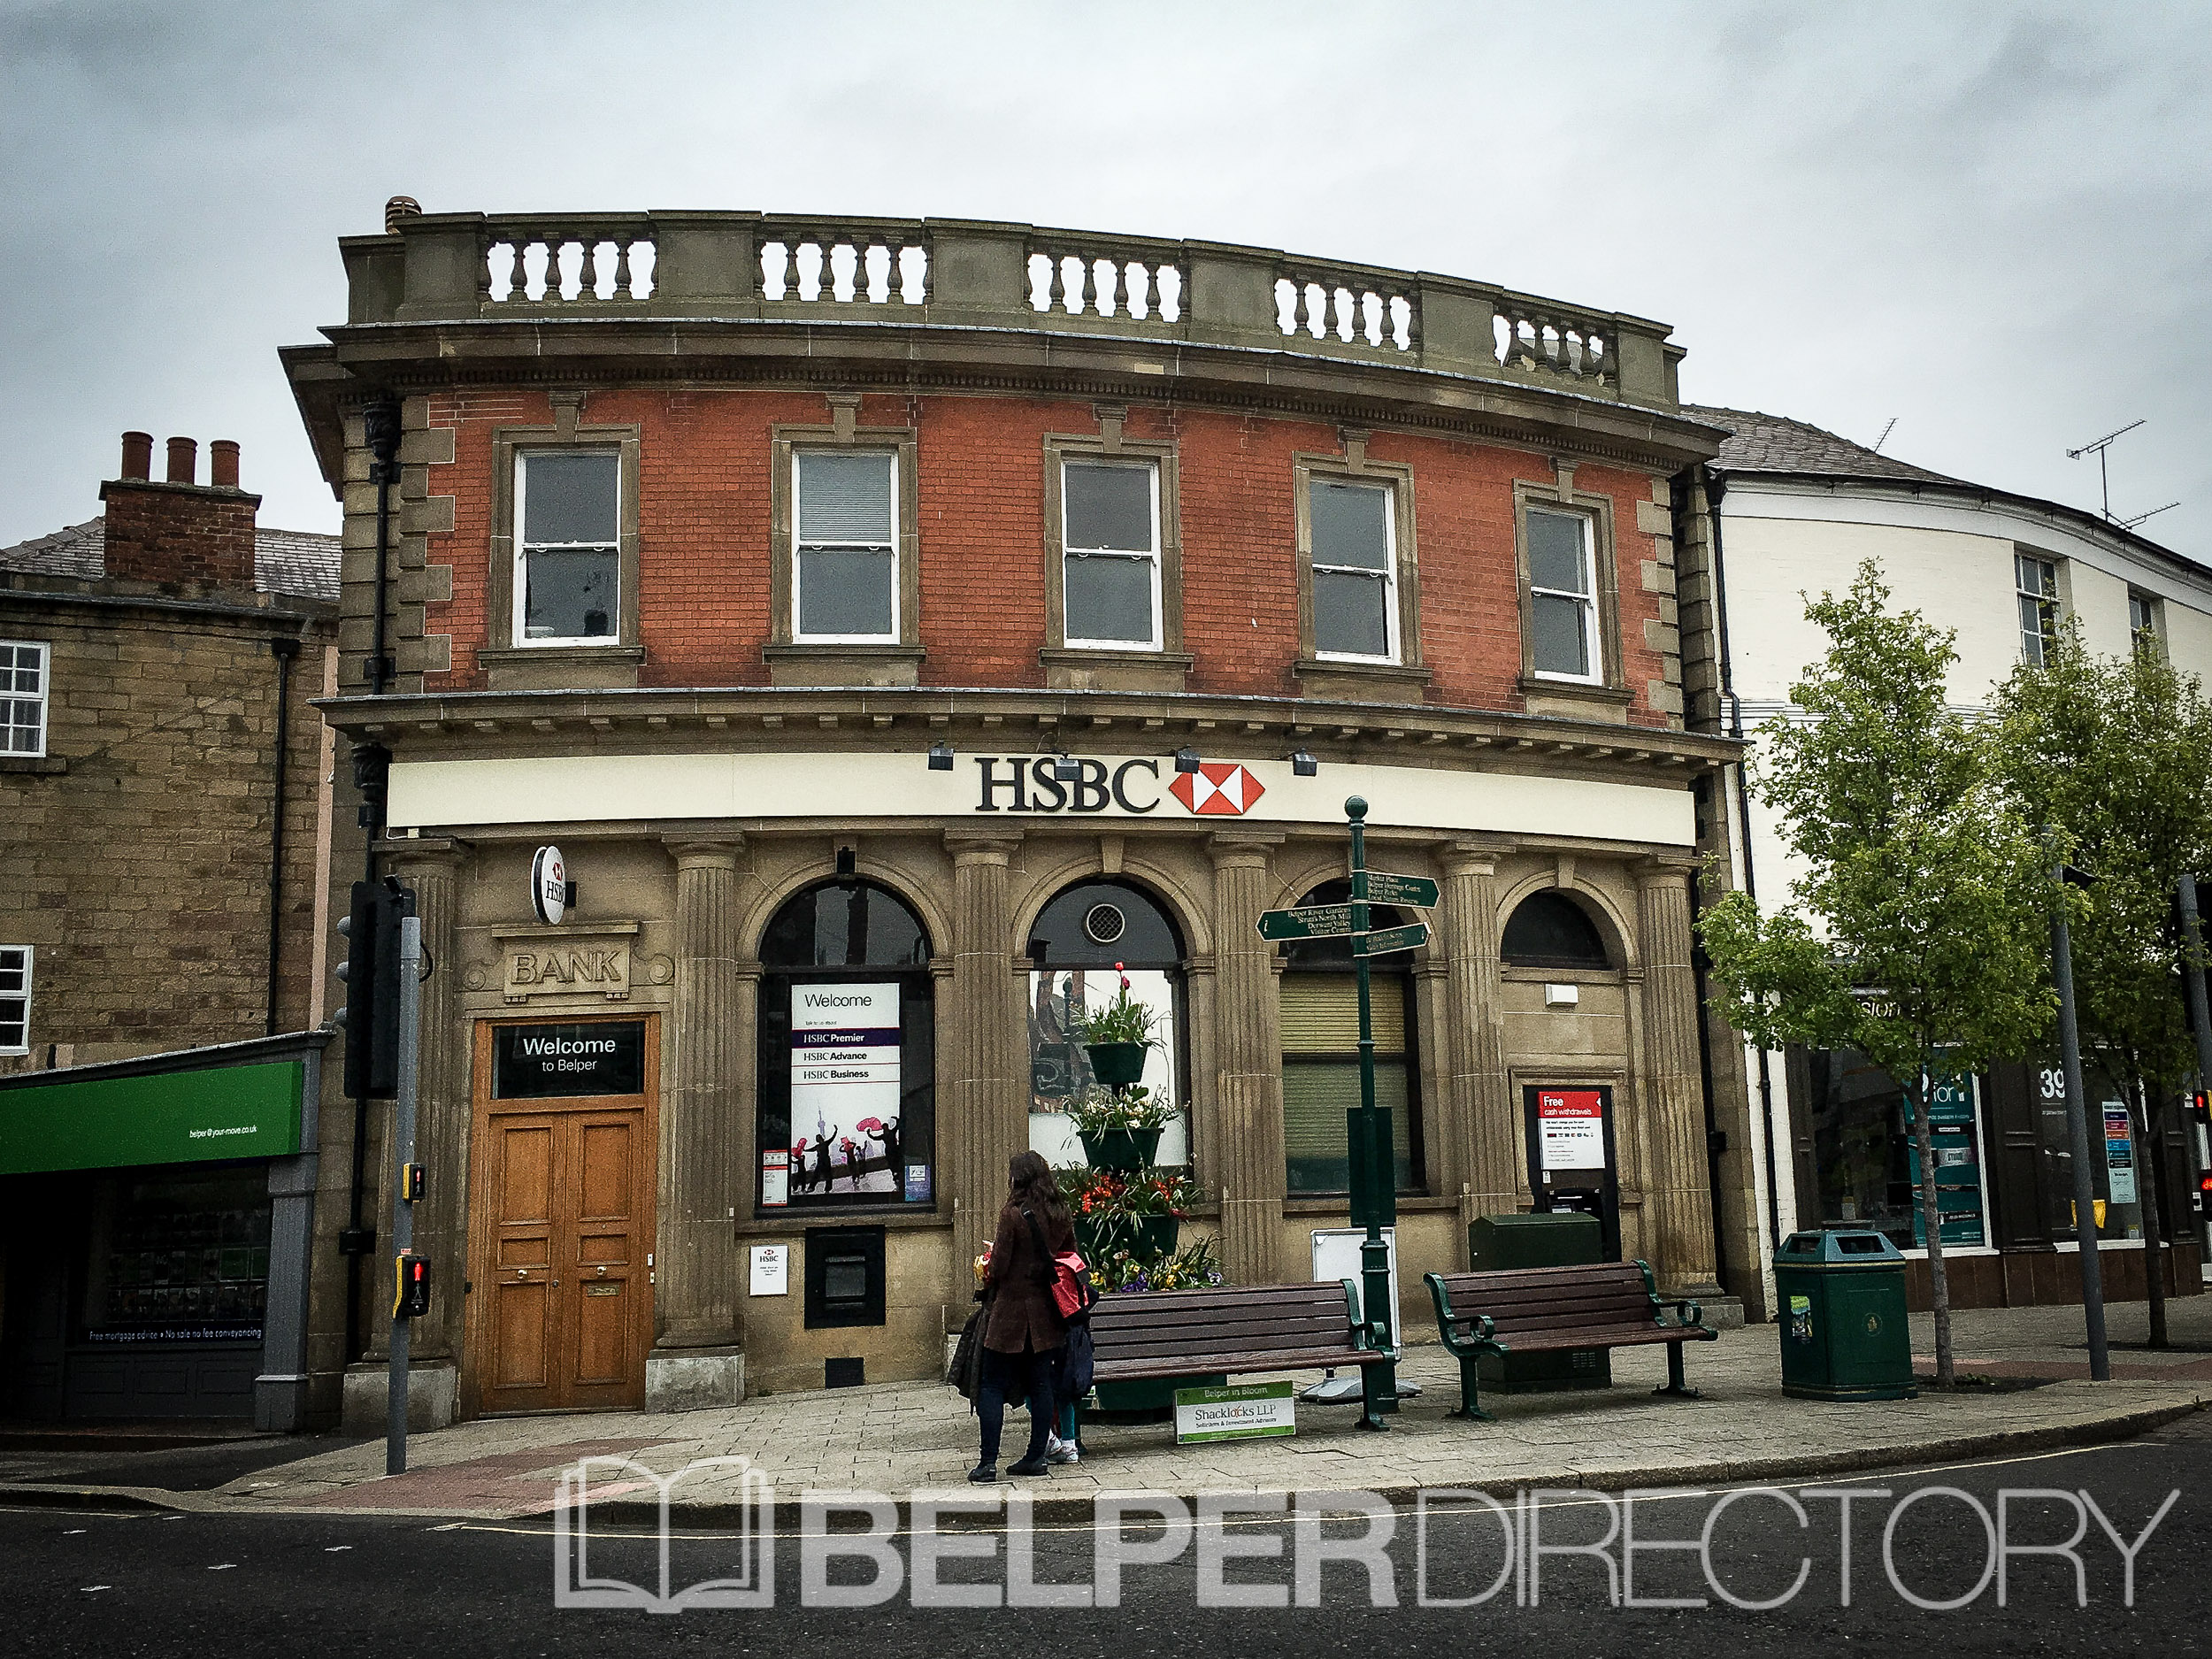 HSBC Bank - Belper on Inter Search